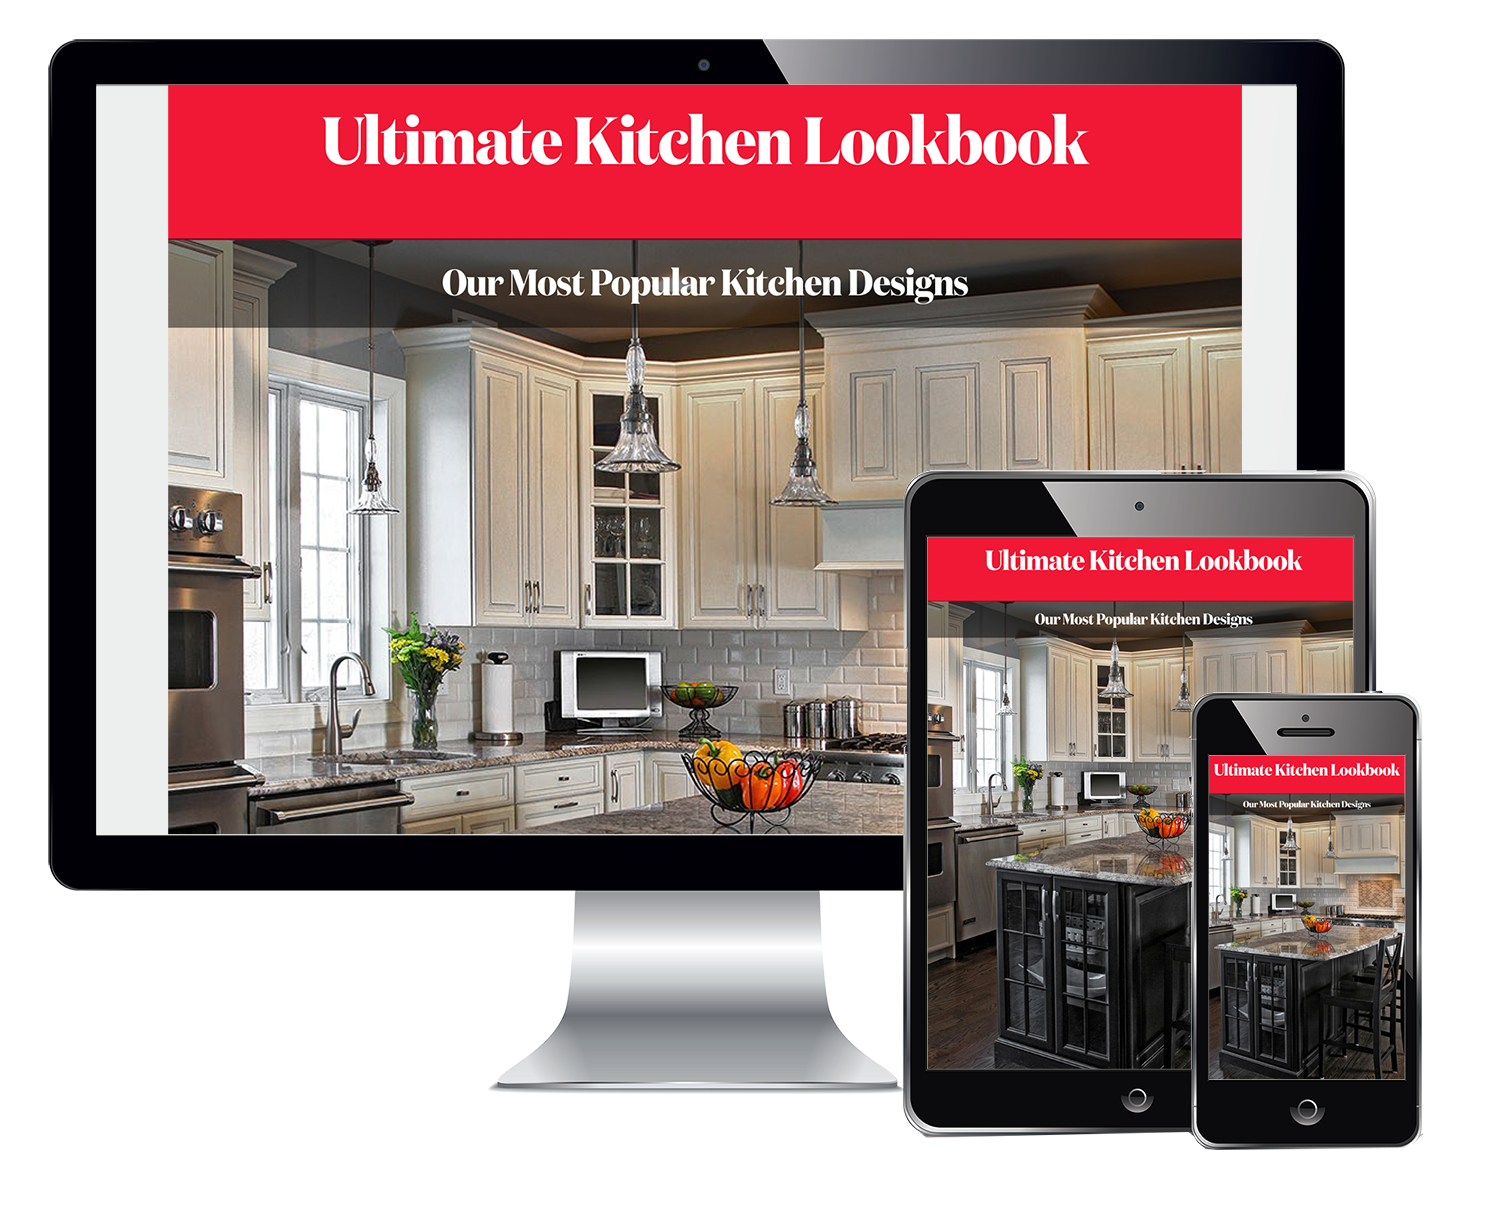 ultimate-kitchen-lookbook-landing-page